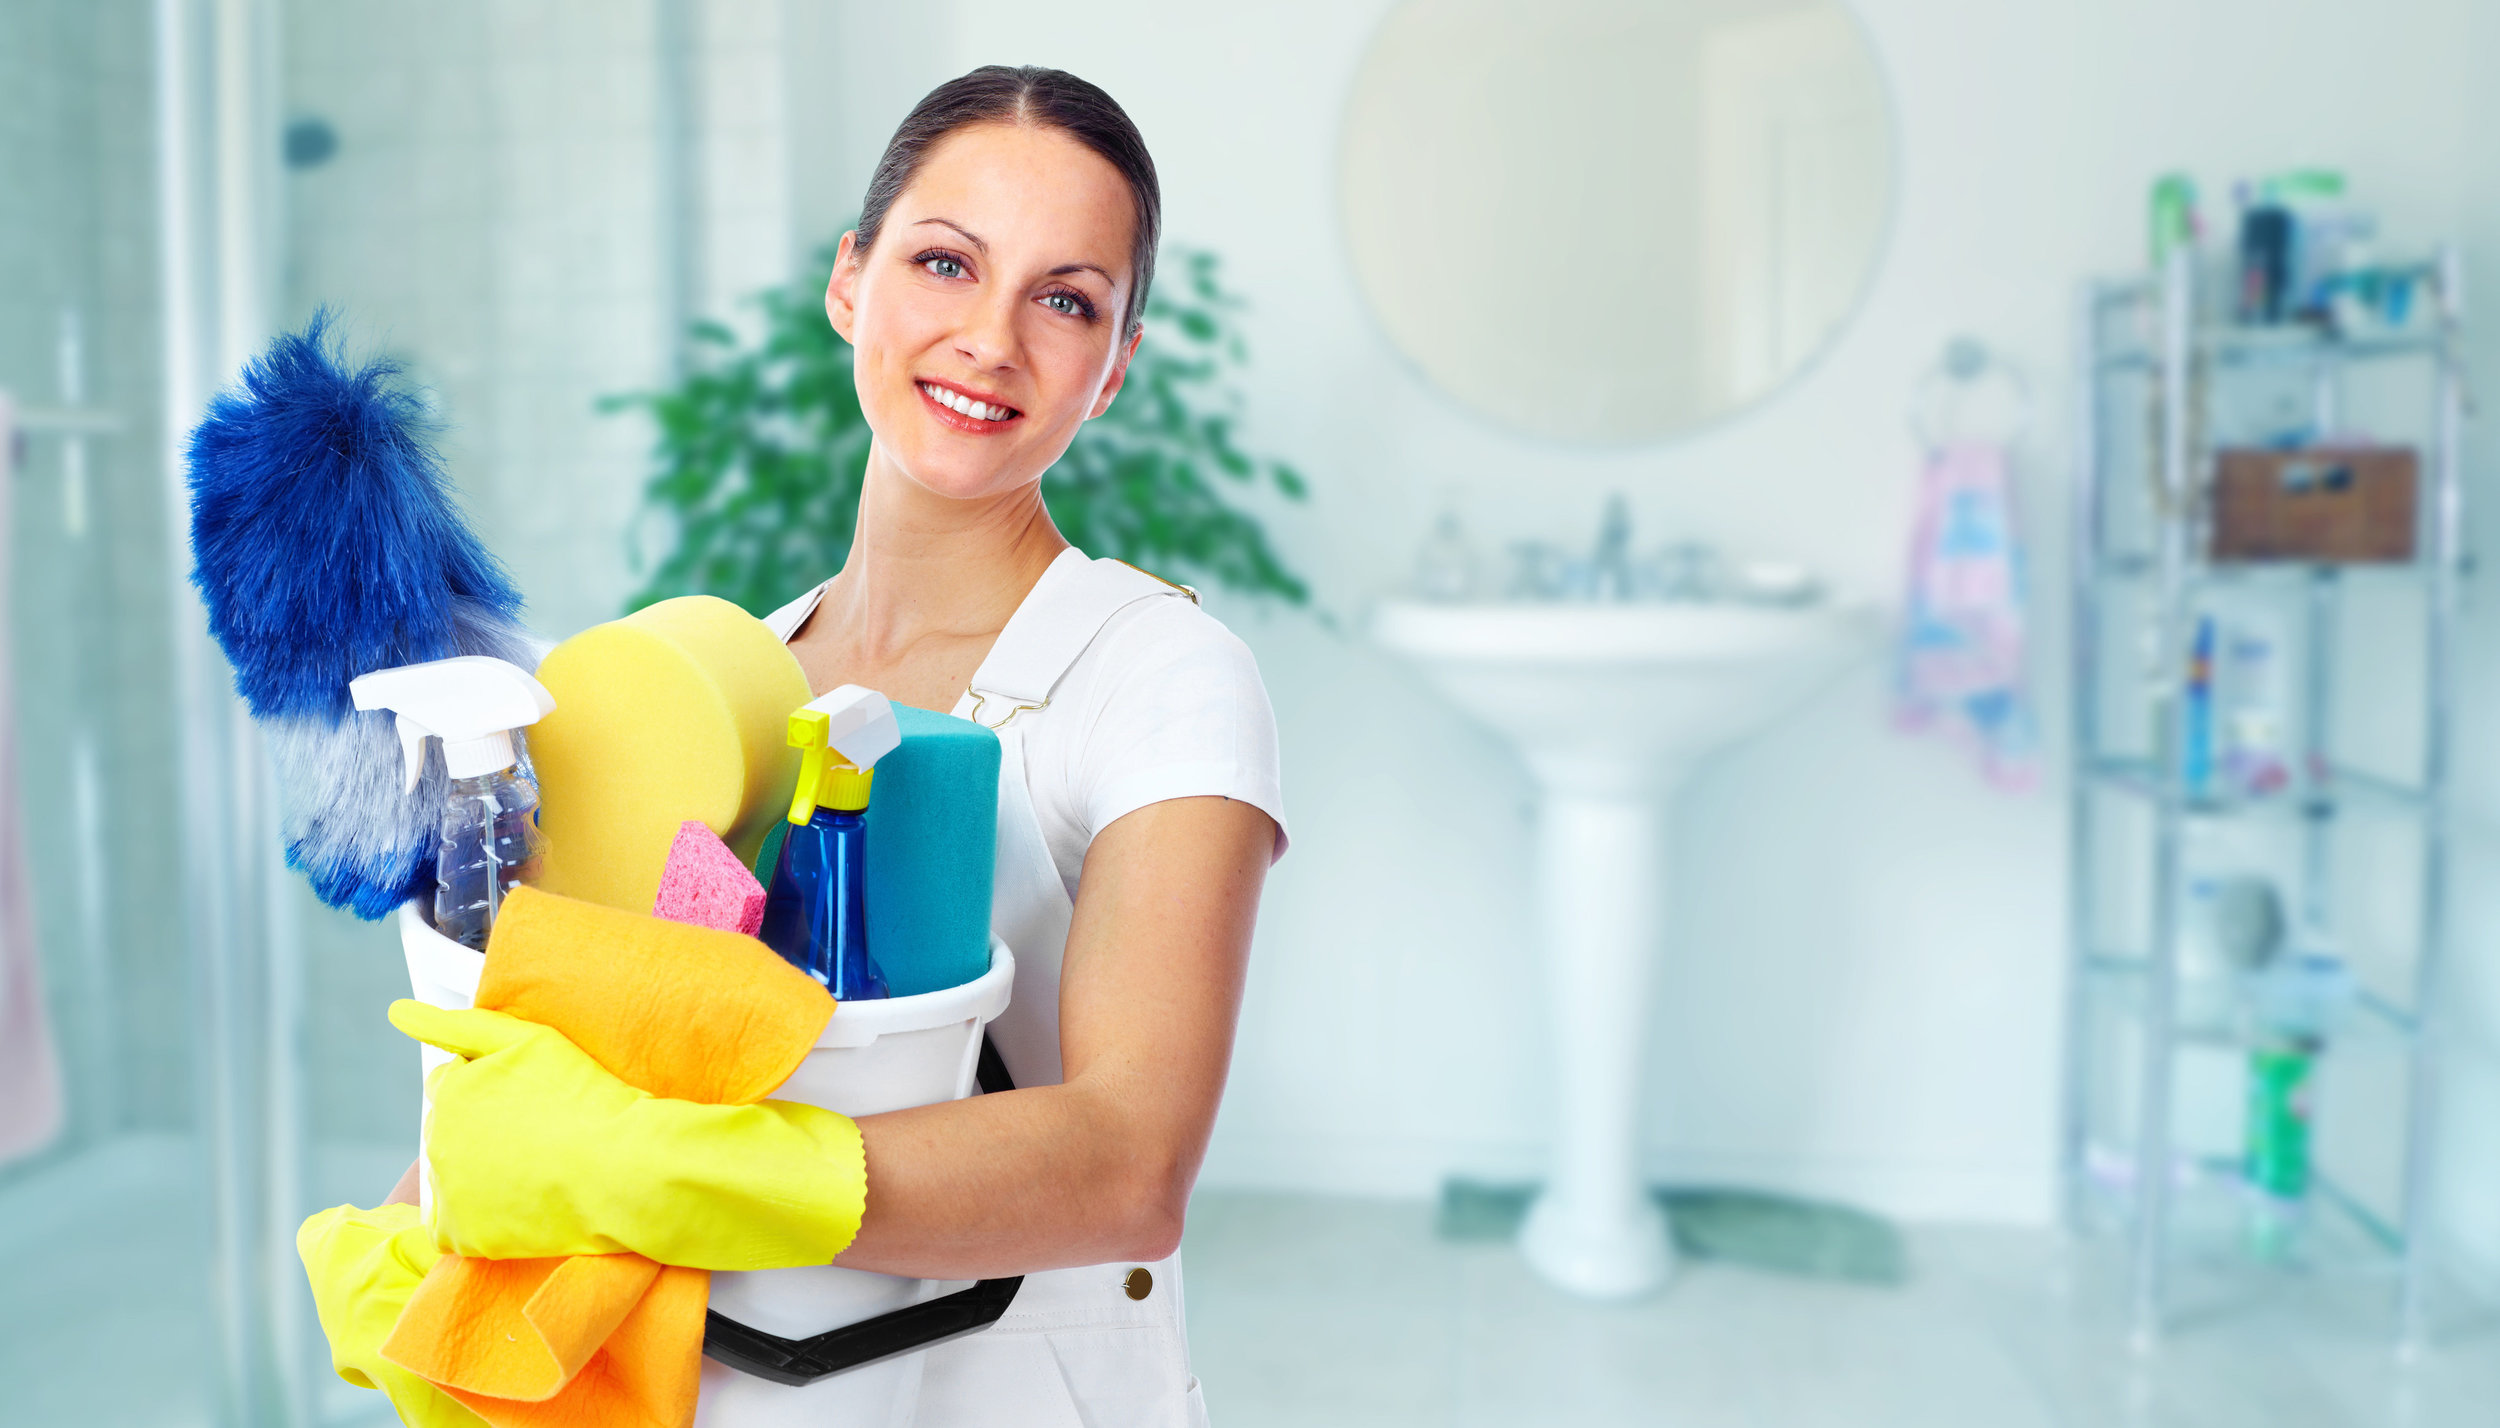 Cleaning Services Company.jpg